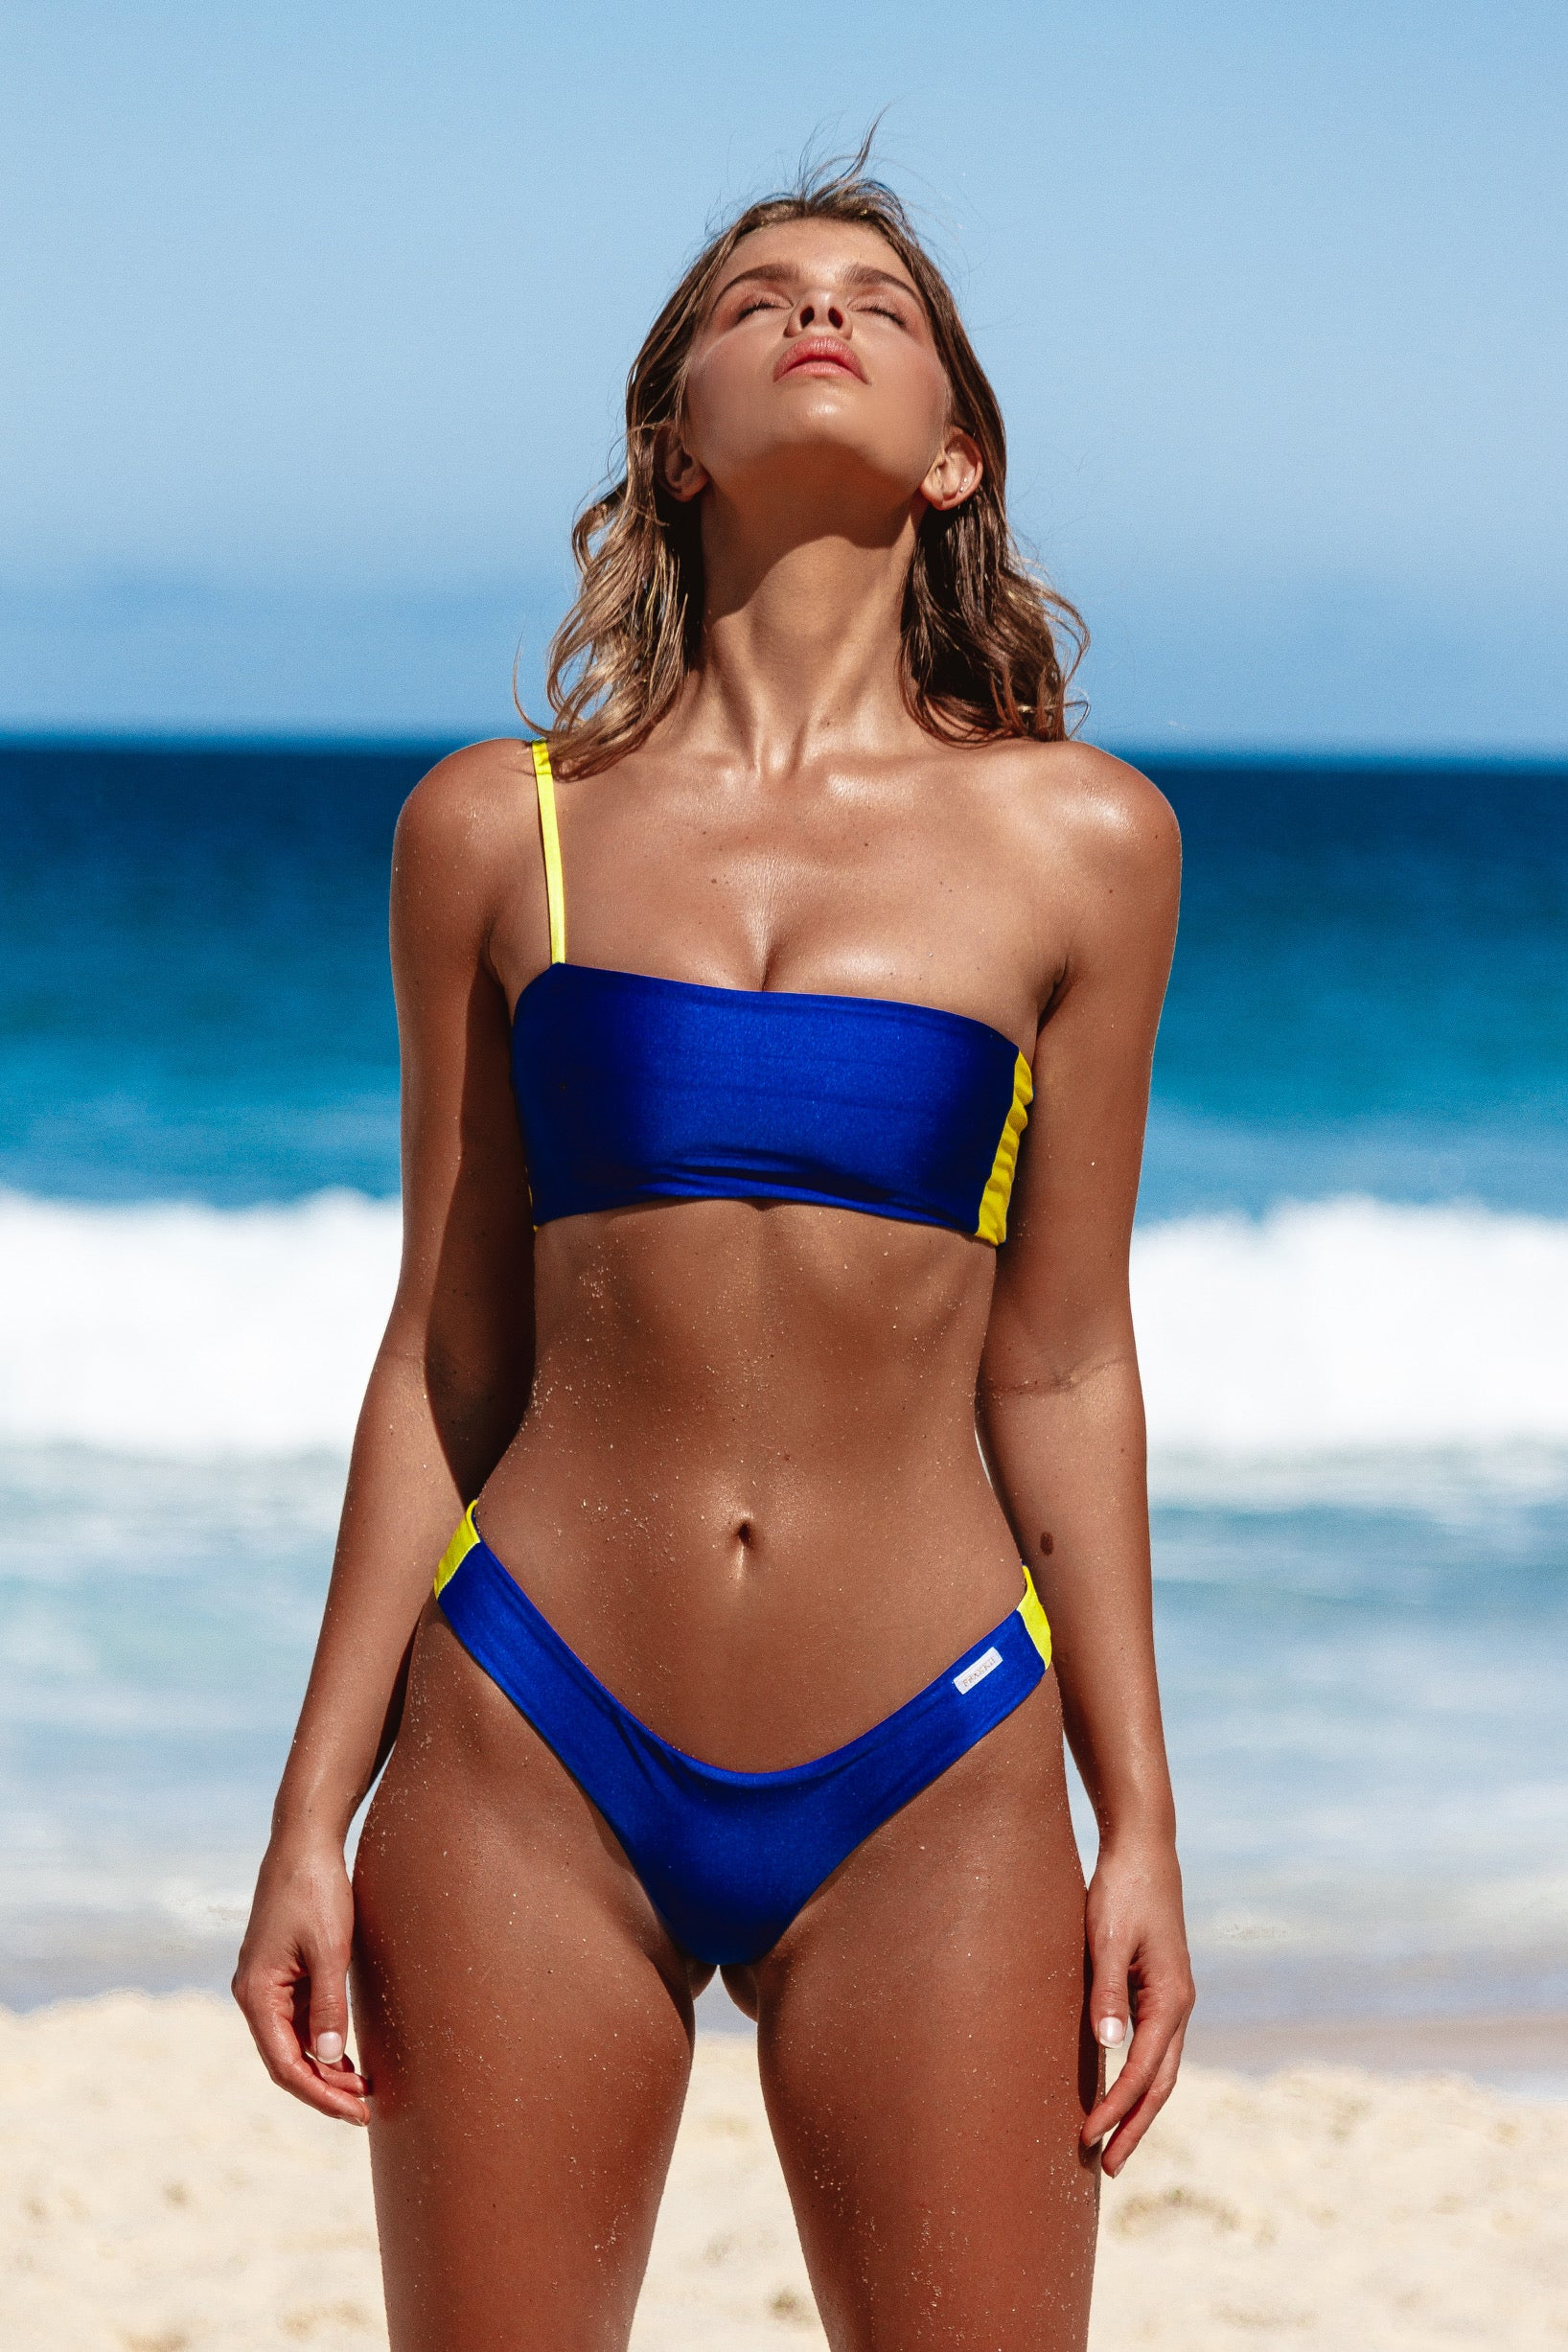 iixiist Cannes Crop Cobalt Blue One Shoulder Bikini Top Seamless Swimwear Frankii Swim Frankie Swimwear Frankie Swim